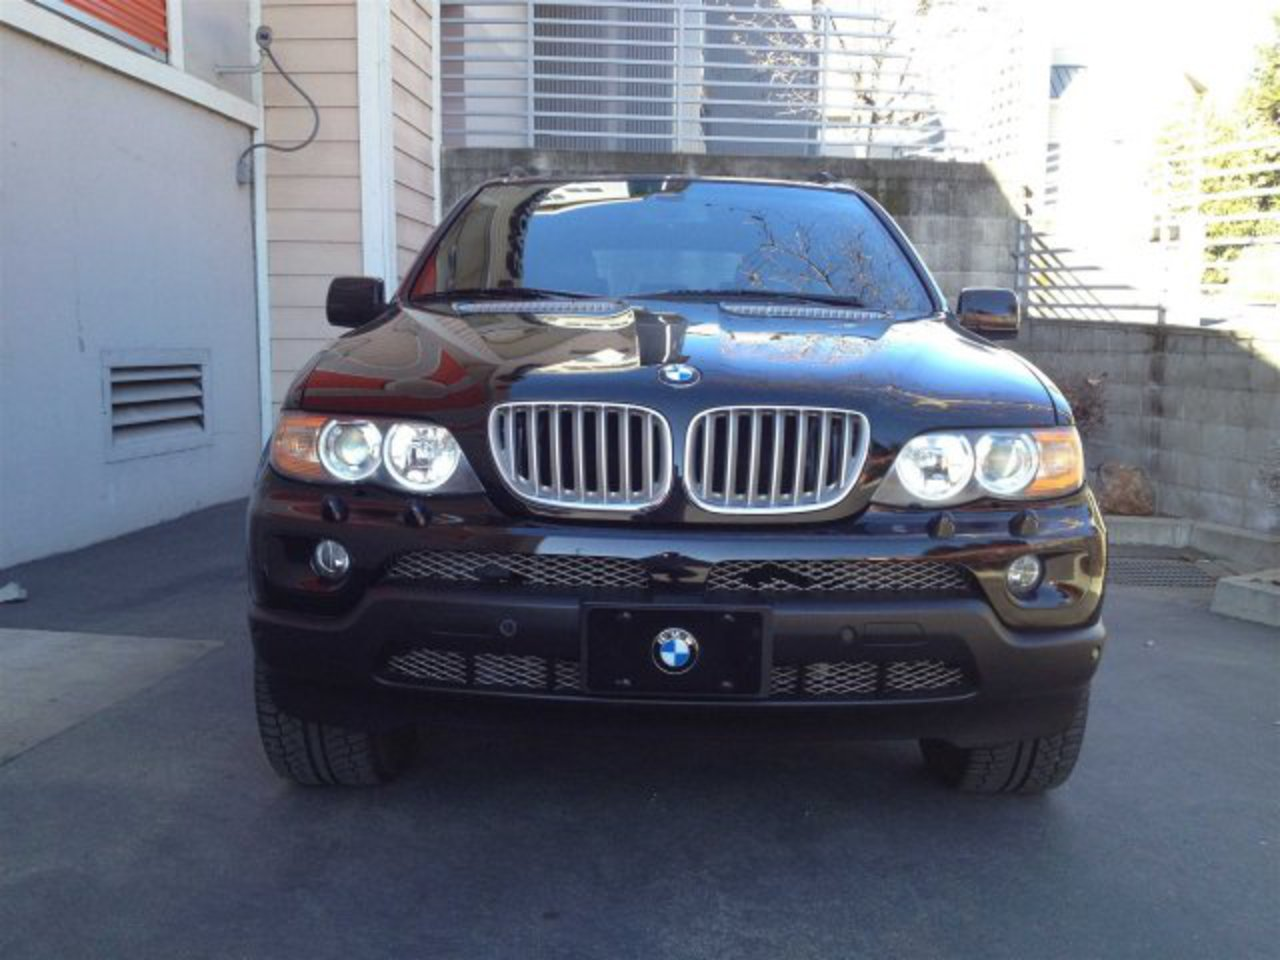 2005 BMW X5 44i Traction Control Stability Control Brake Assist All Wheel